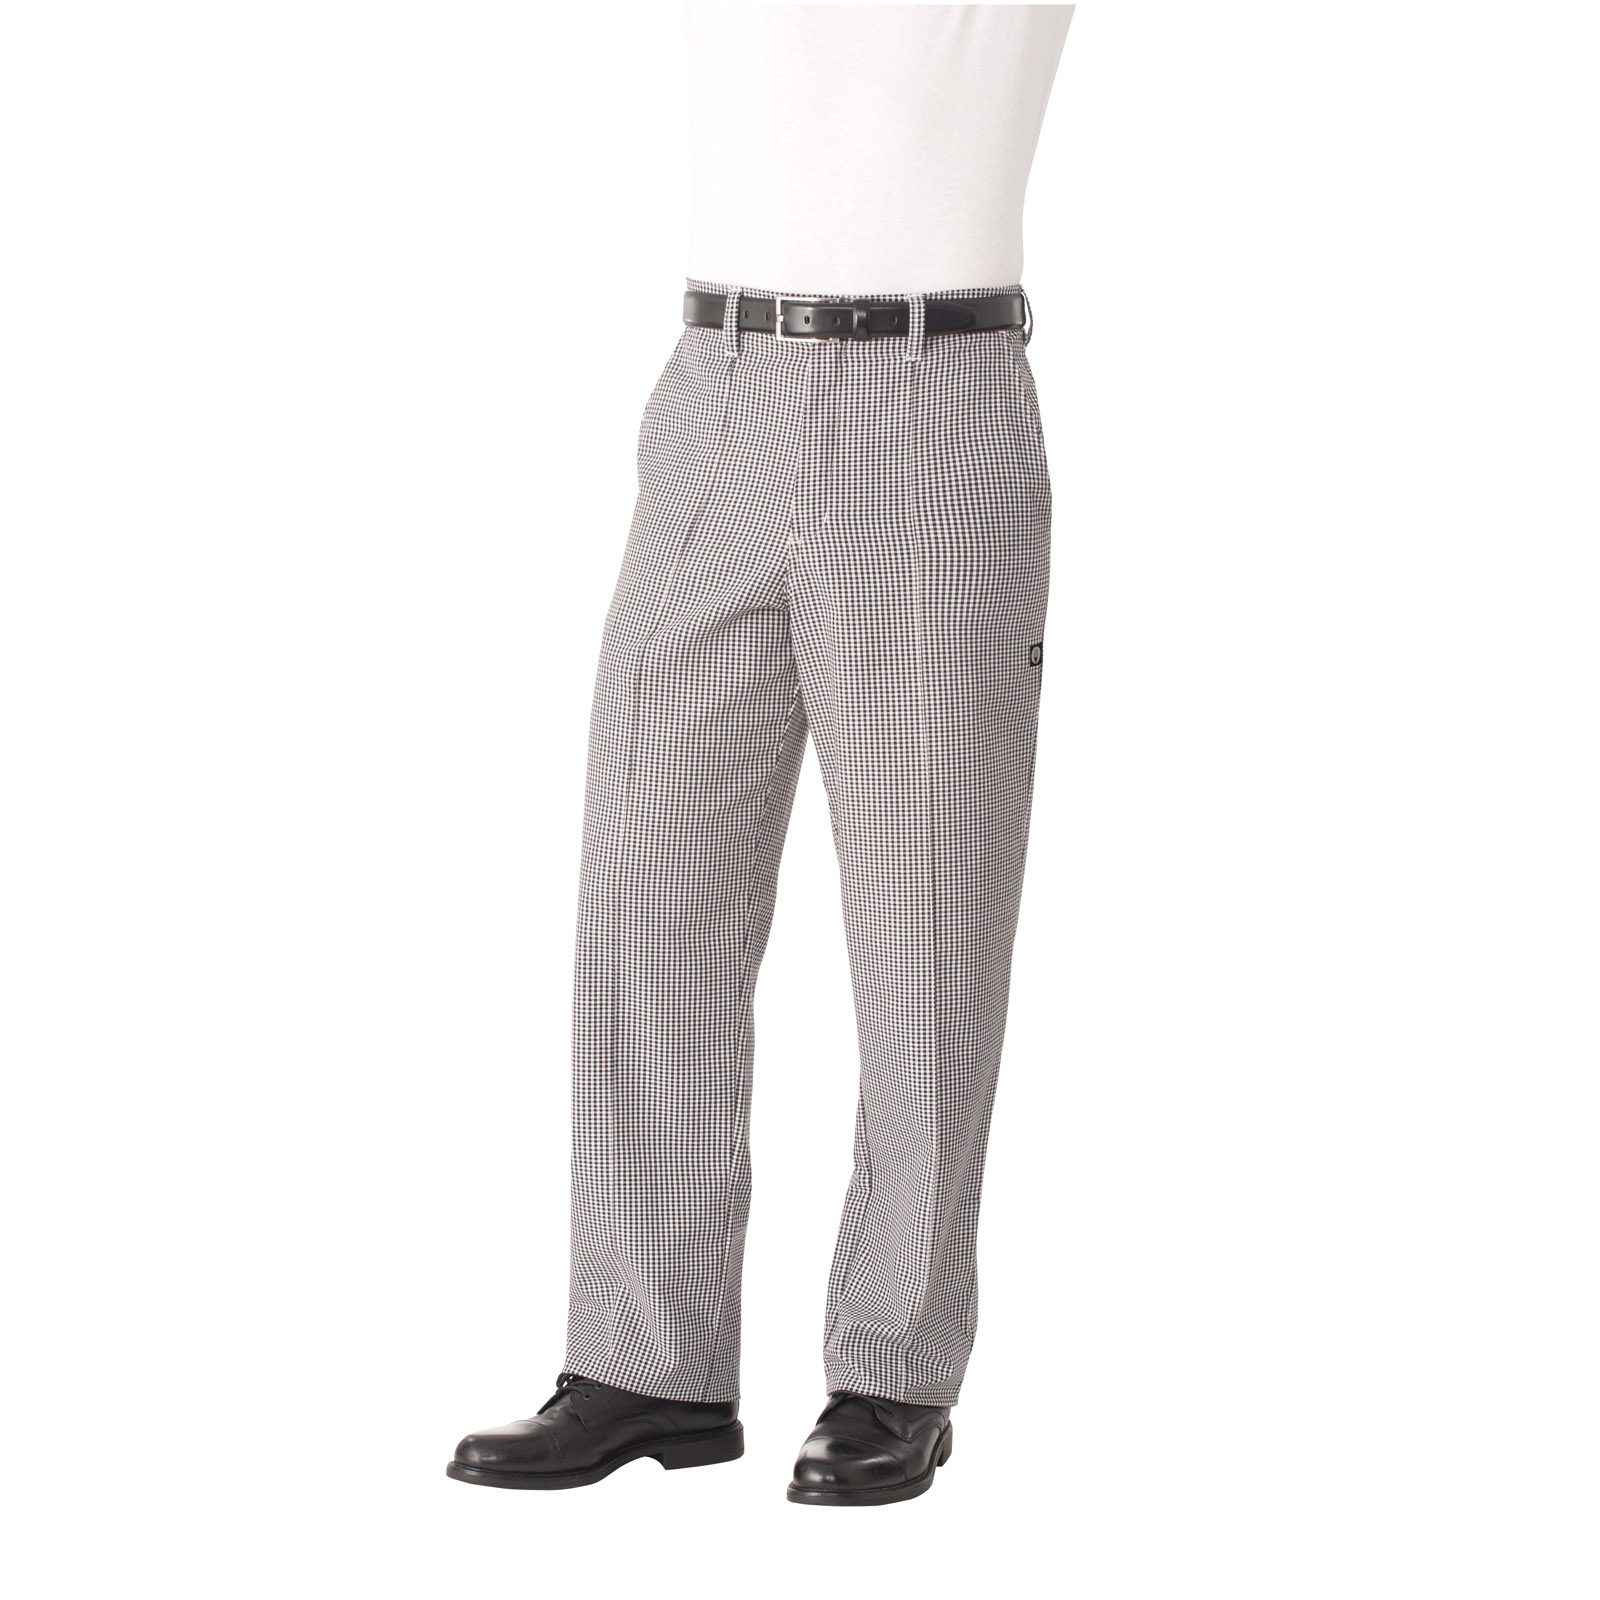 Chef Works BWCP00034 chef's pants